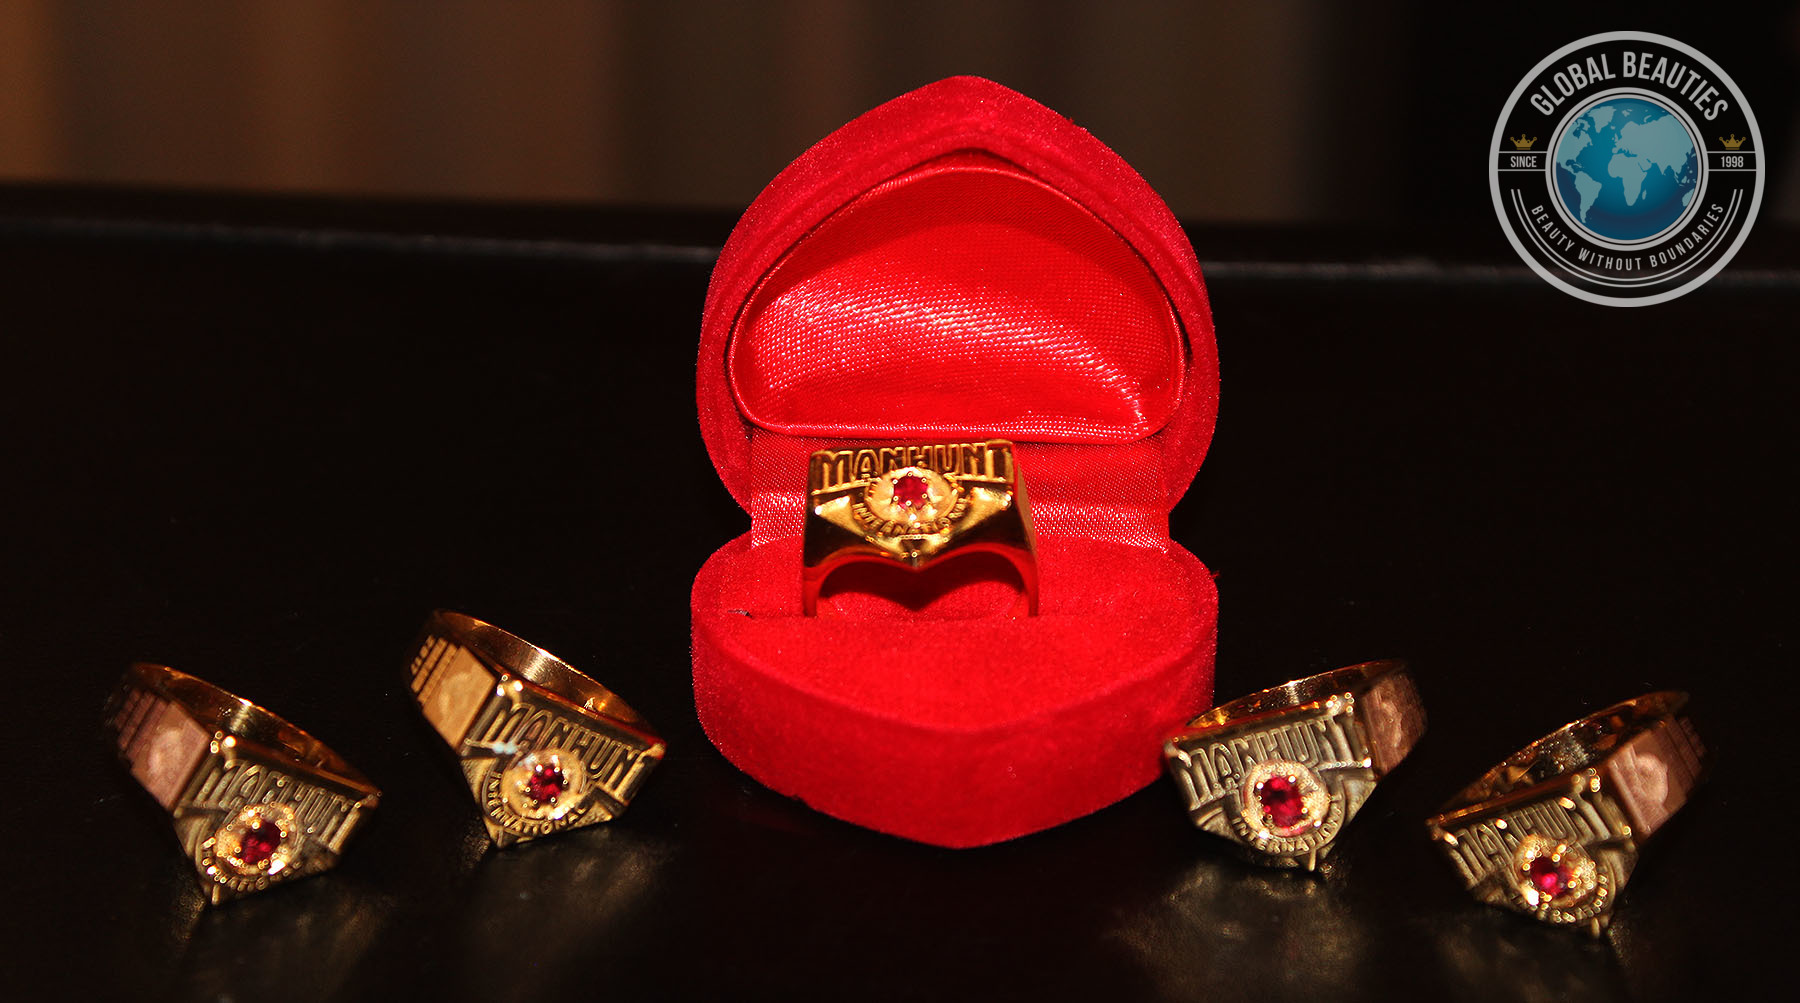 The Winner and the four runner-ups will get the spectacular rings as part of their prize package